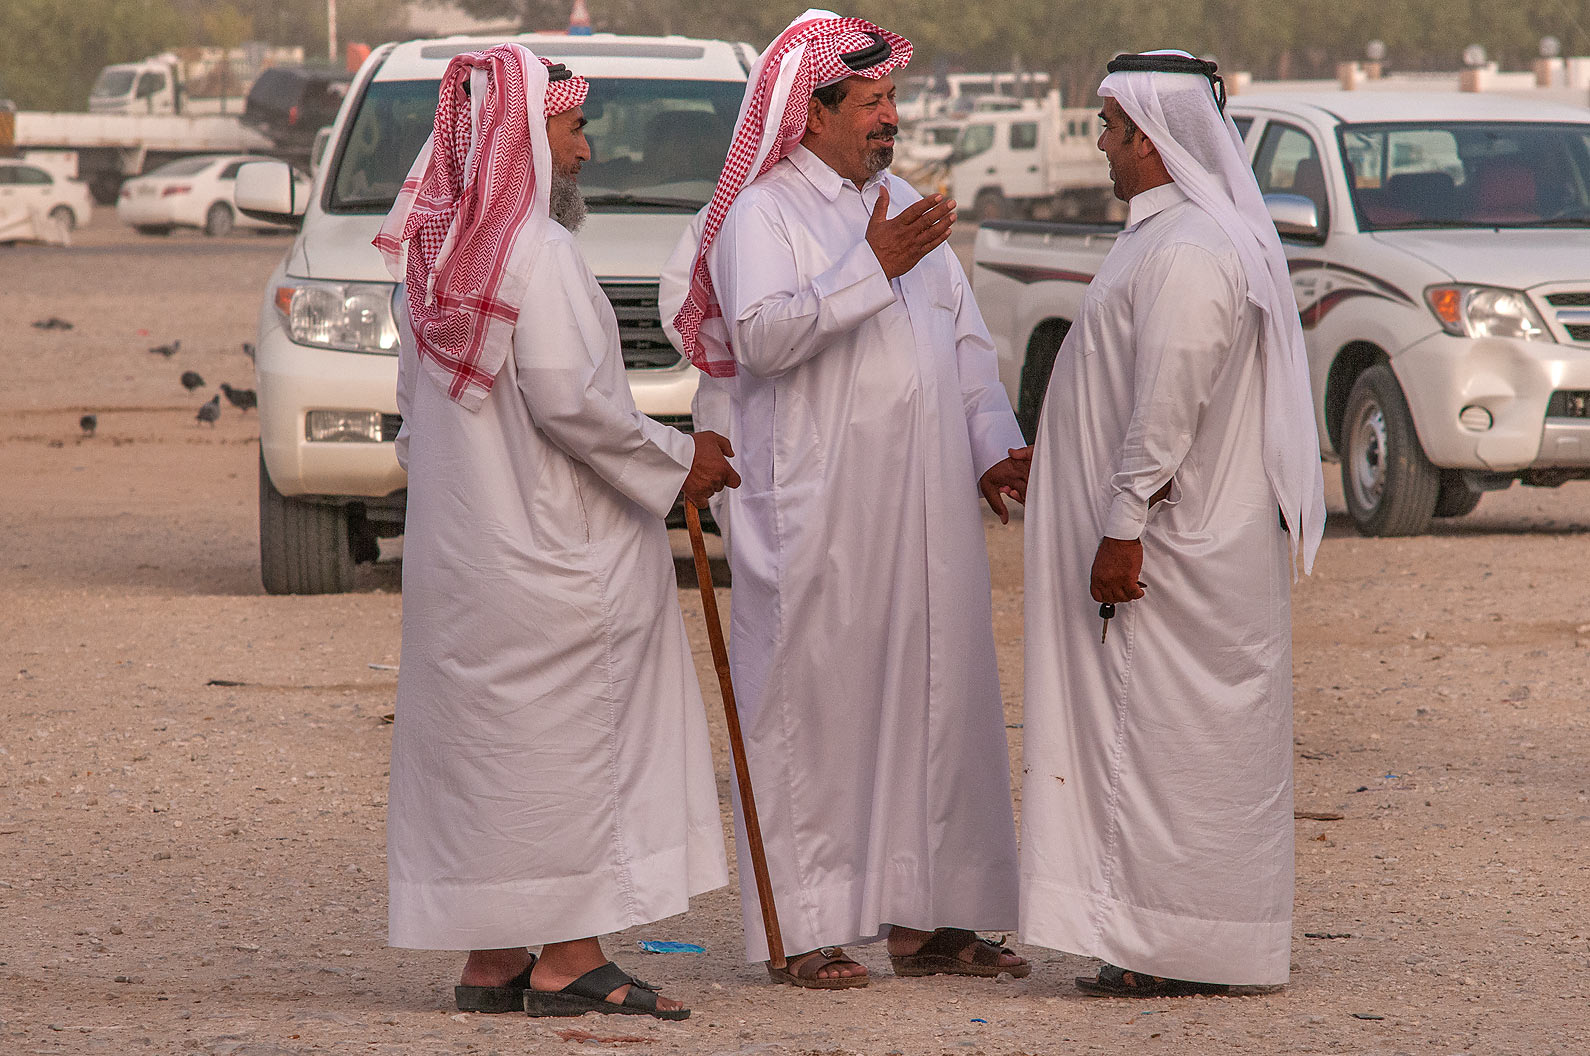 Shoppers greeting themselves in Camel Market, Abu Hamour area. Doha, Qatar